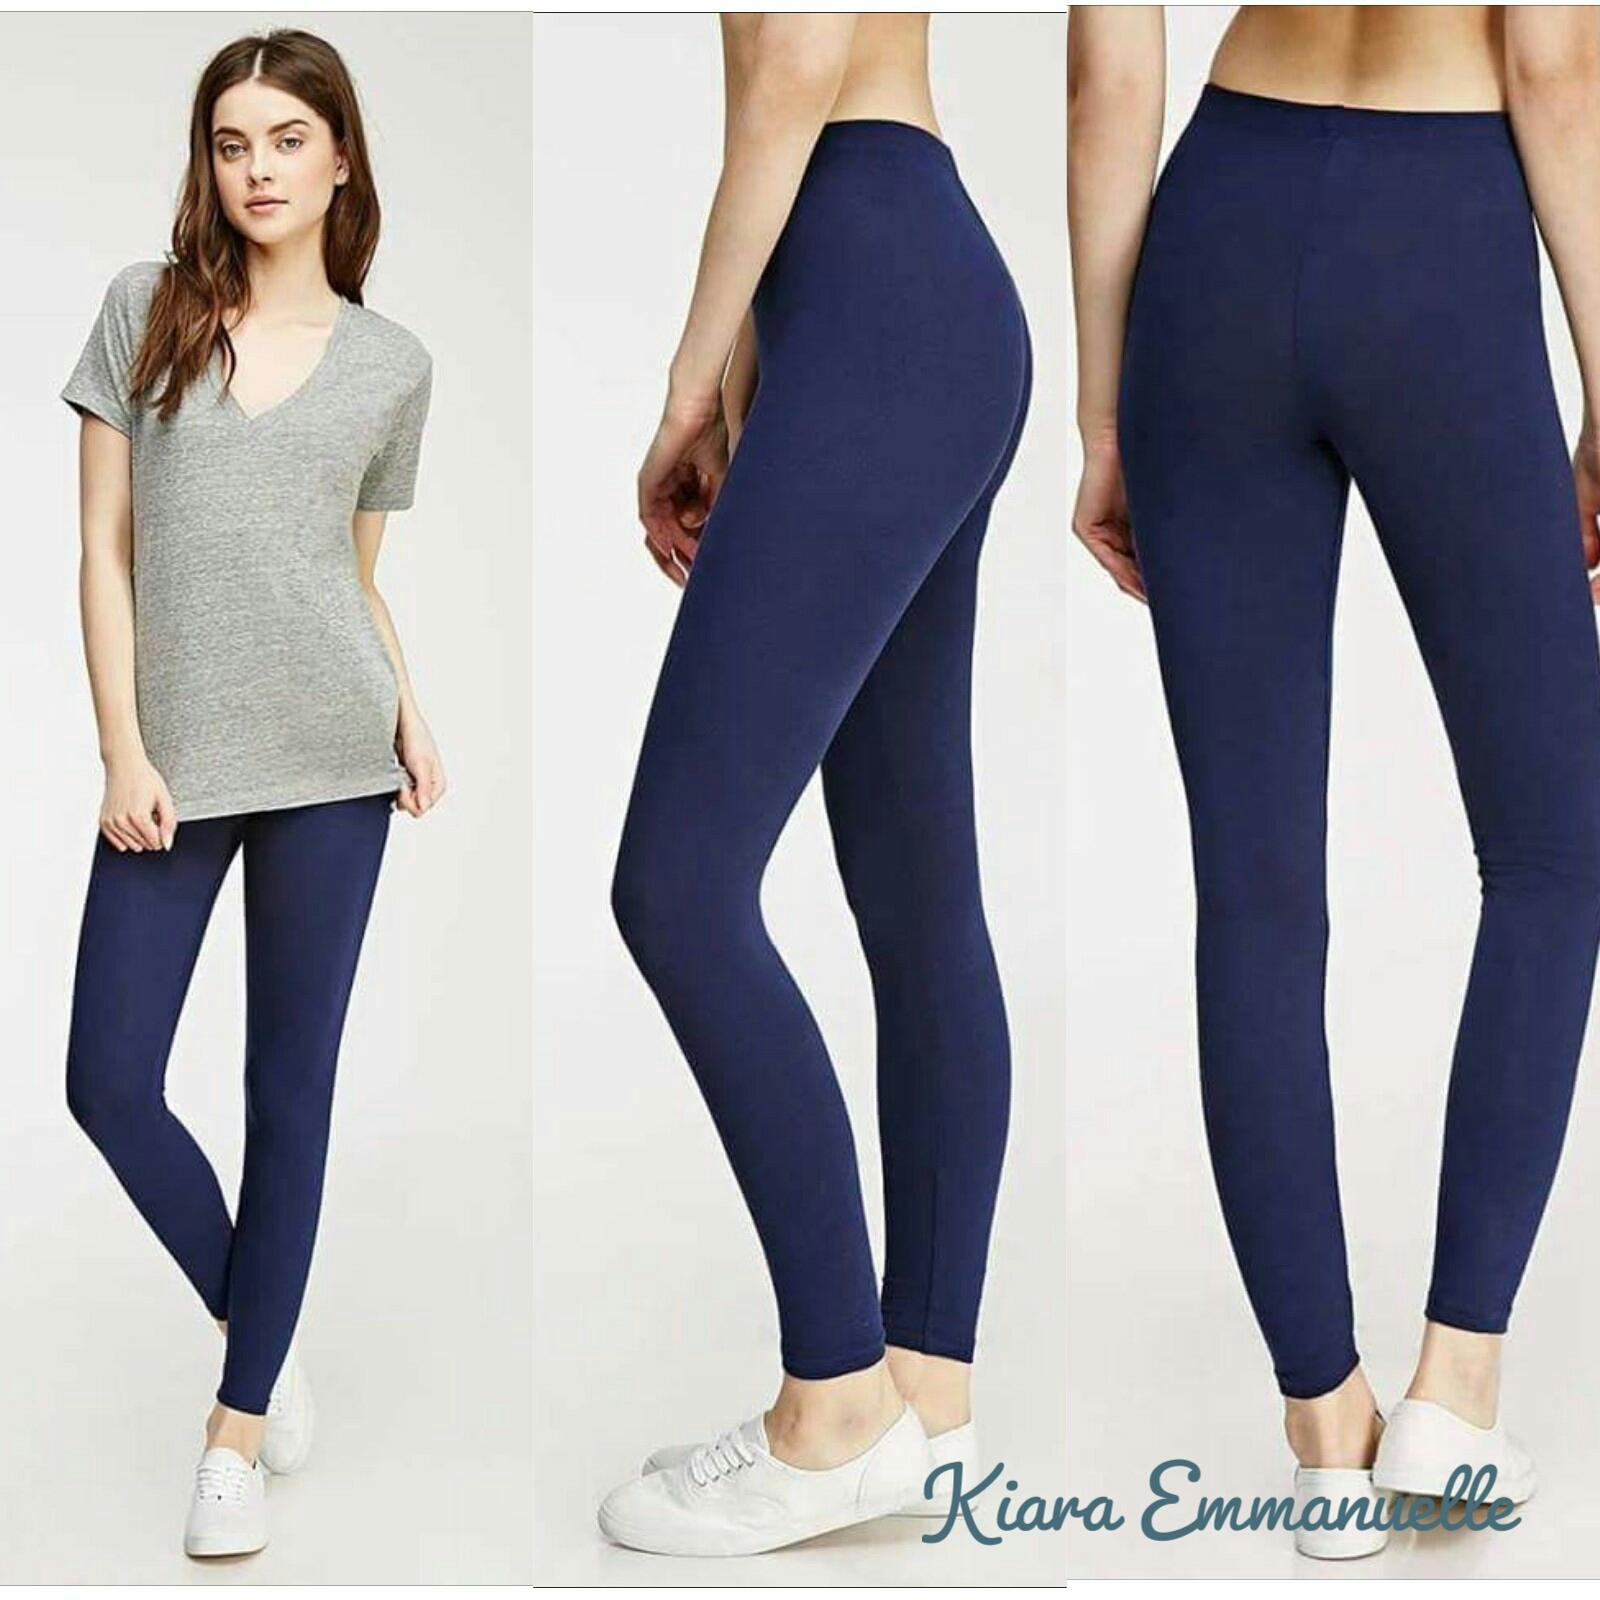 Pants for Women for sale - Womens Fashion Pants online ...